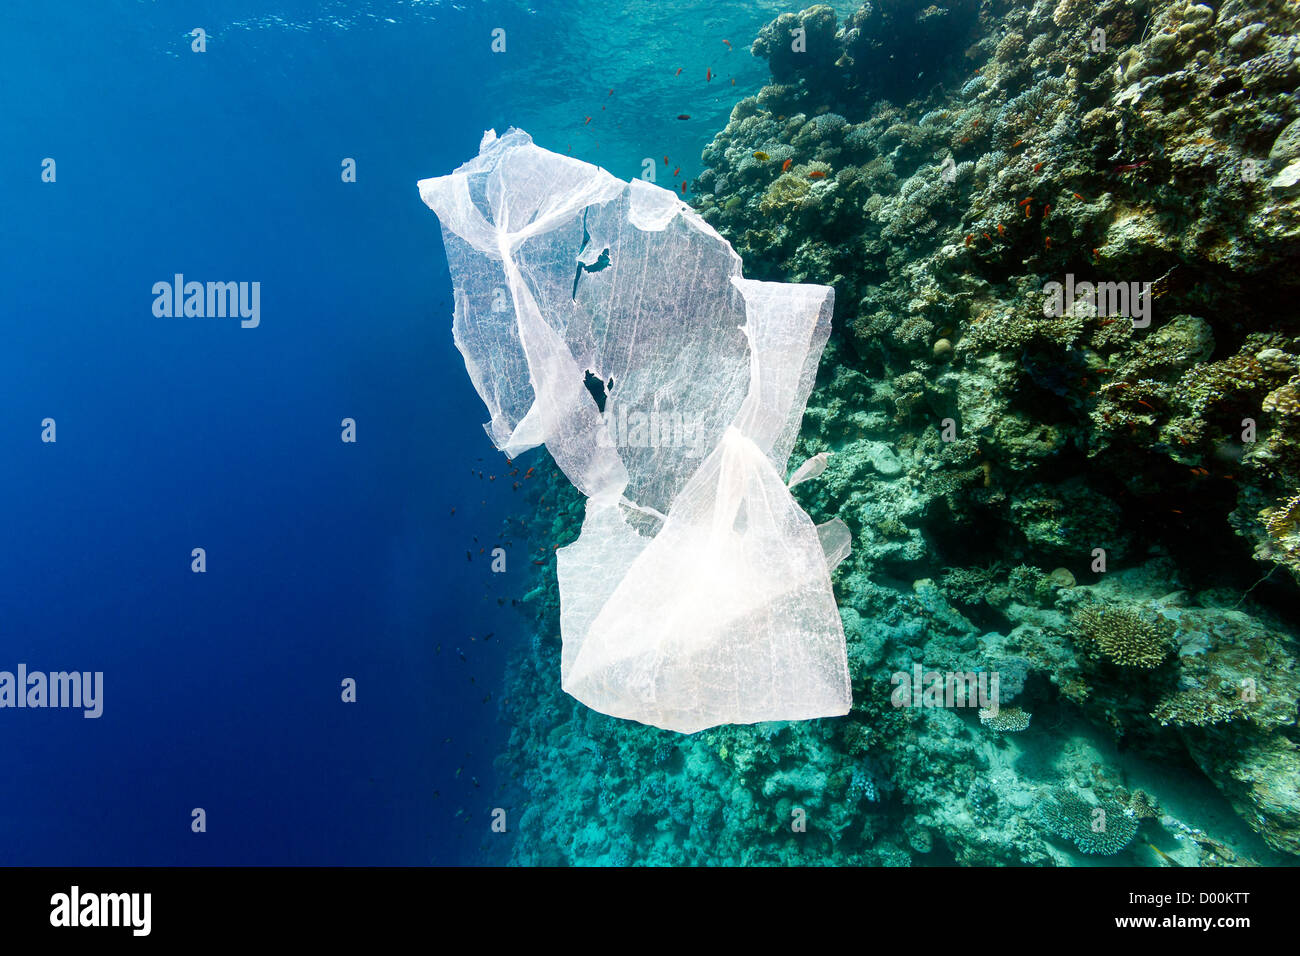 A waste plastic bag floats in the sea next to a coral reef wall - Stock Image